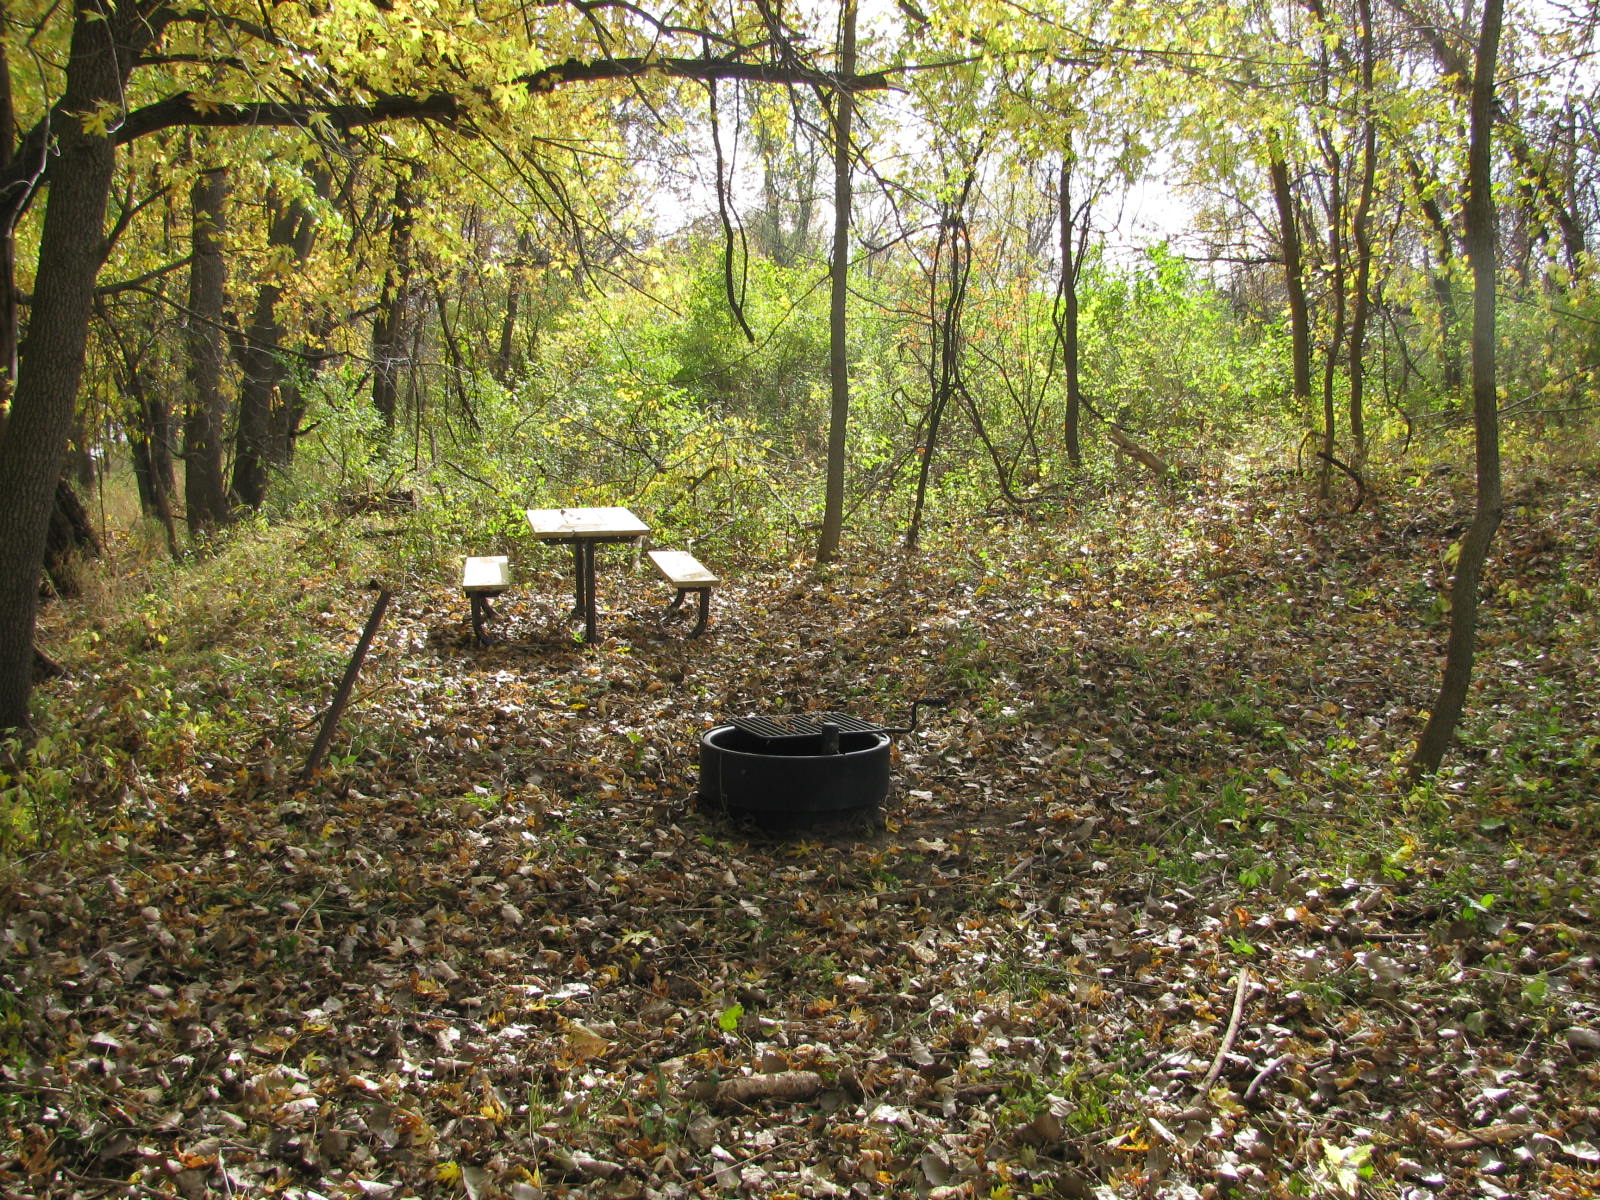 One of the primitive campsites on Foster and Cloquet Islands.